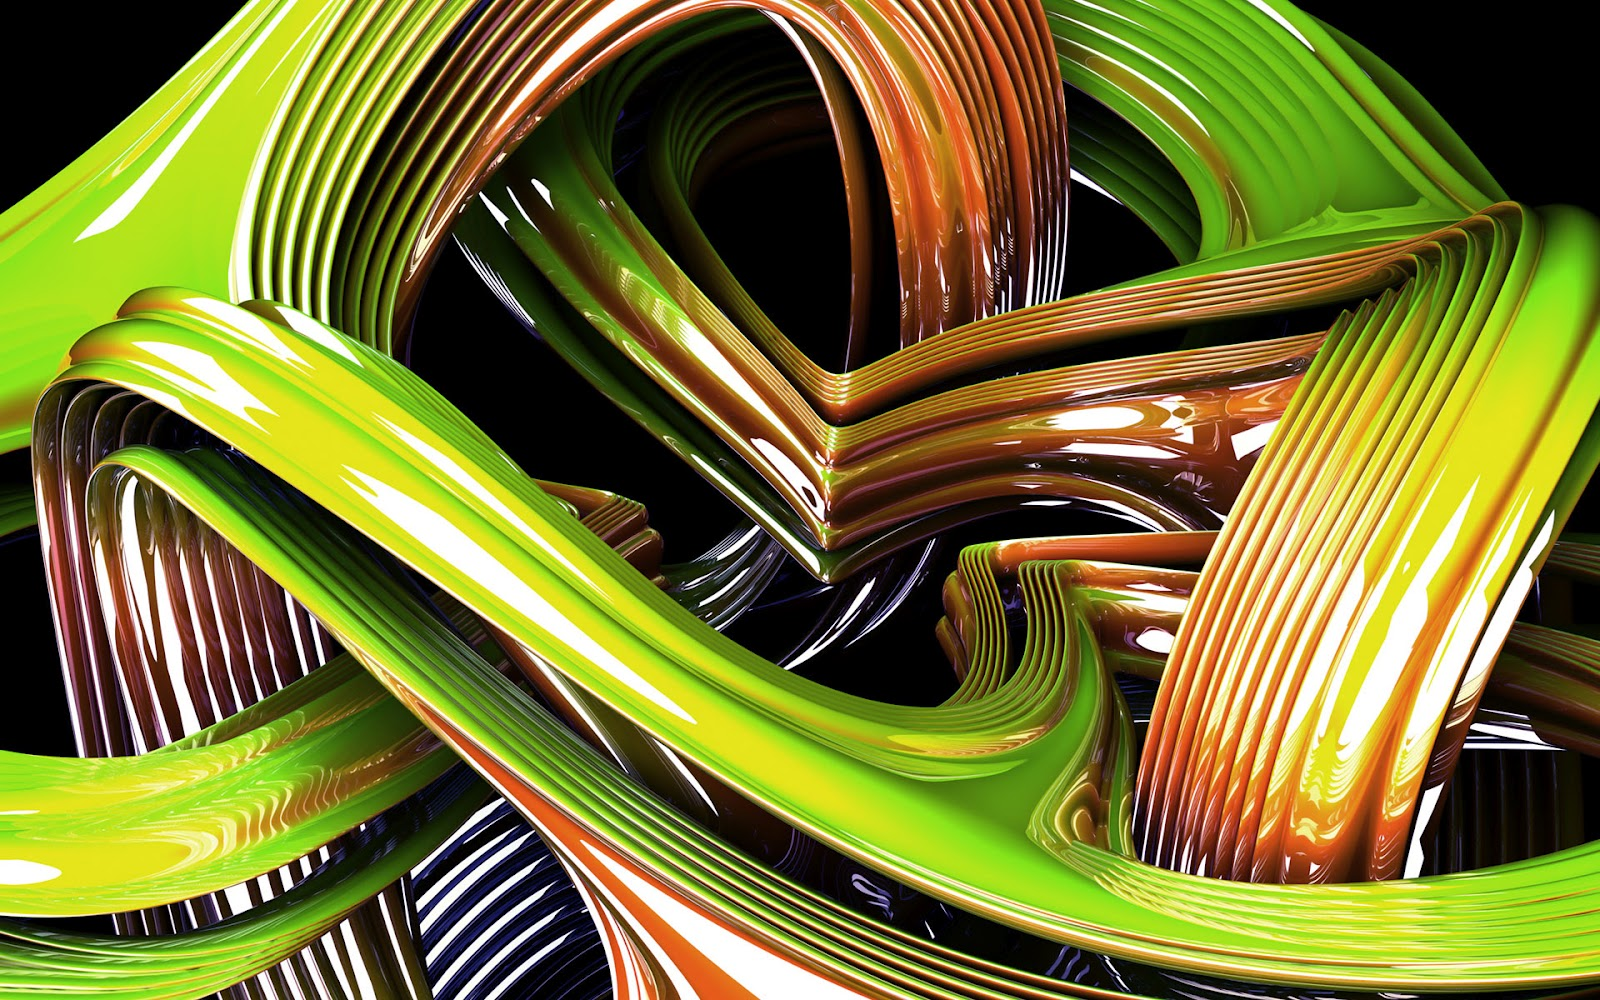 Great Abstract 3D Wallpaper on this Abstract Graphic Wallpaper website 1600x1000